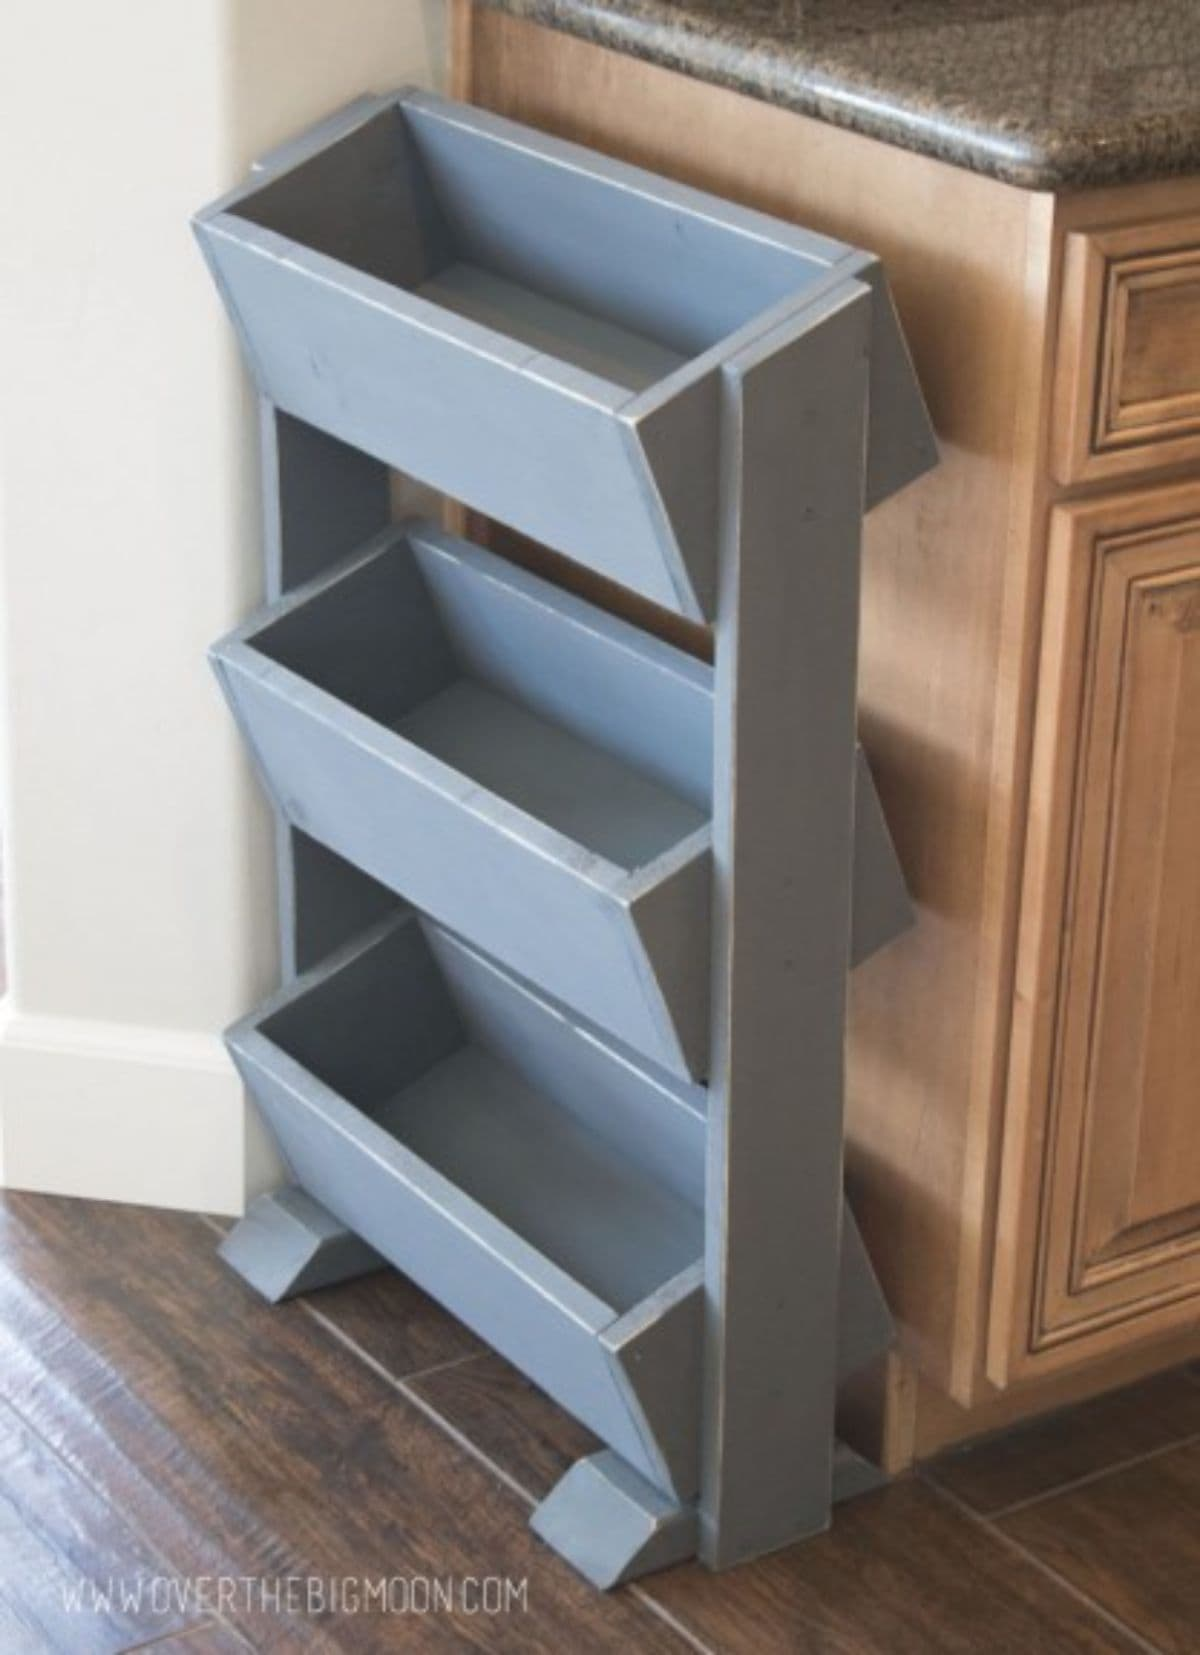 Sitting on the edge of a kitchen unit is a 3 tier vegetable display unti, with each grey wooden box shelf at a slant